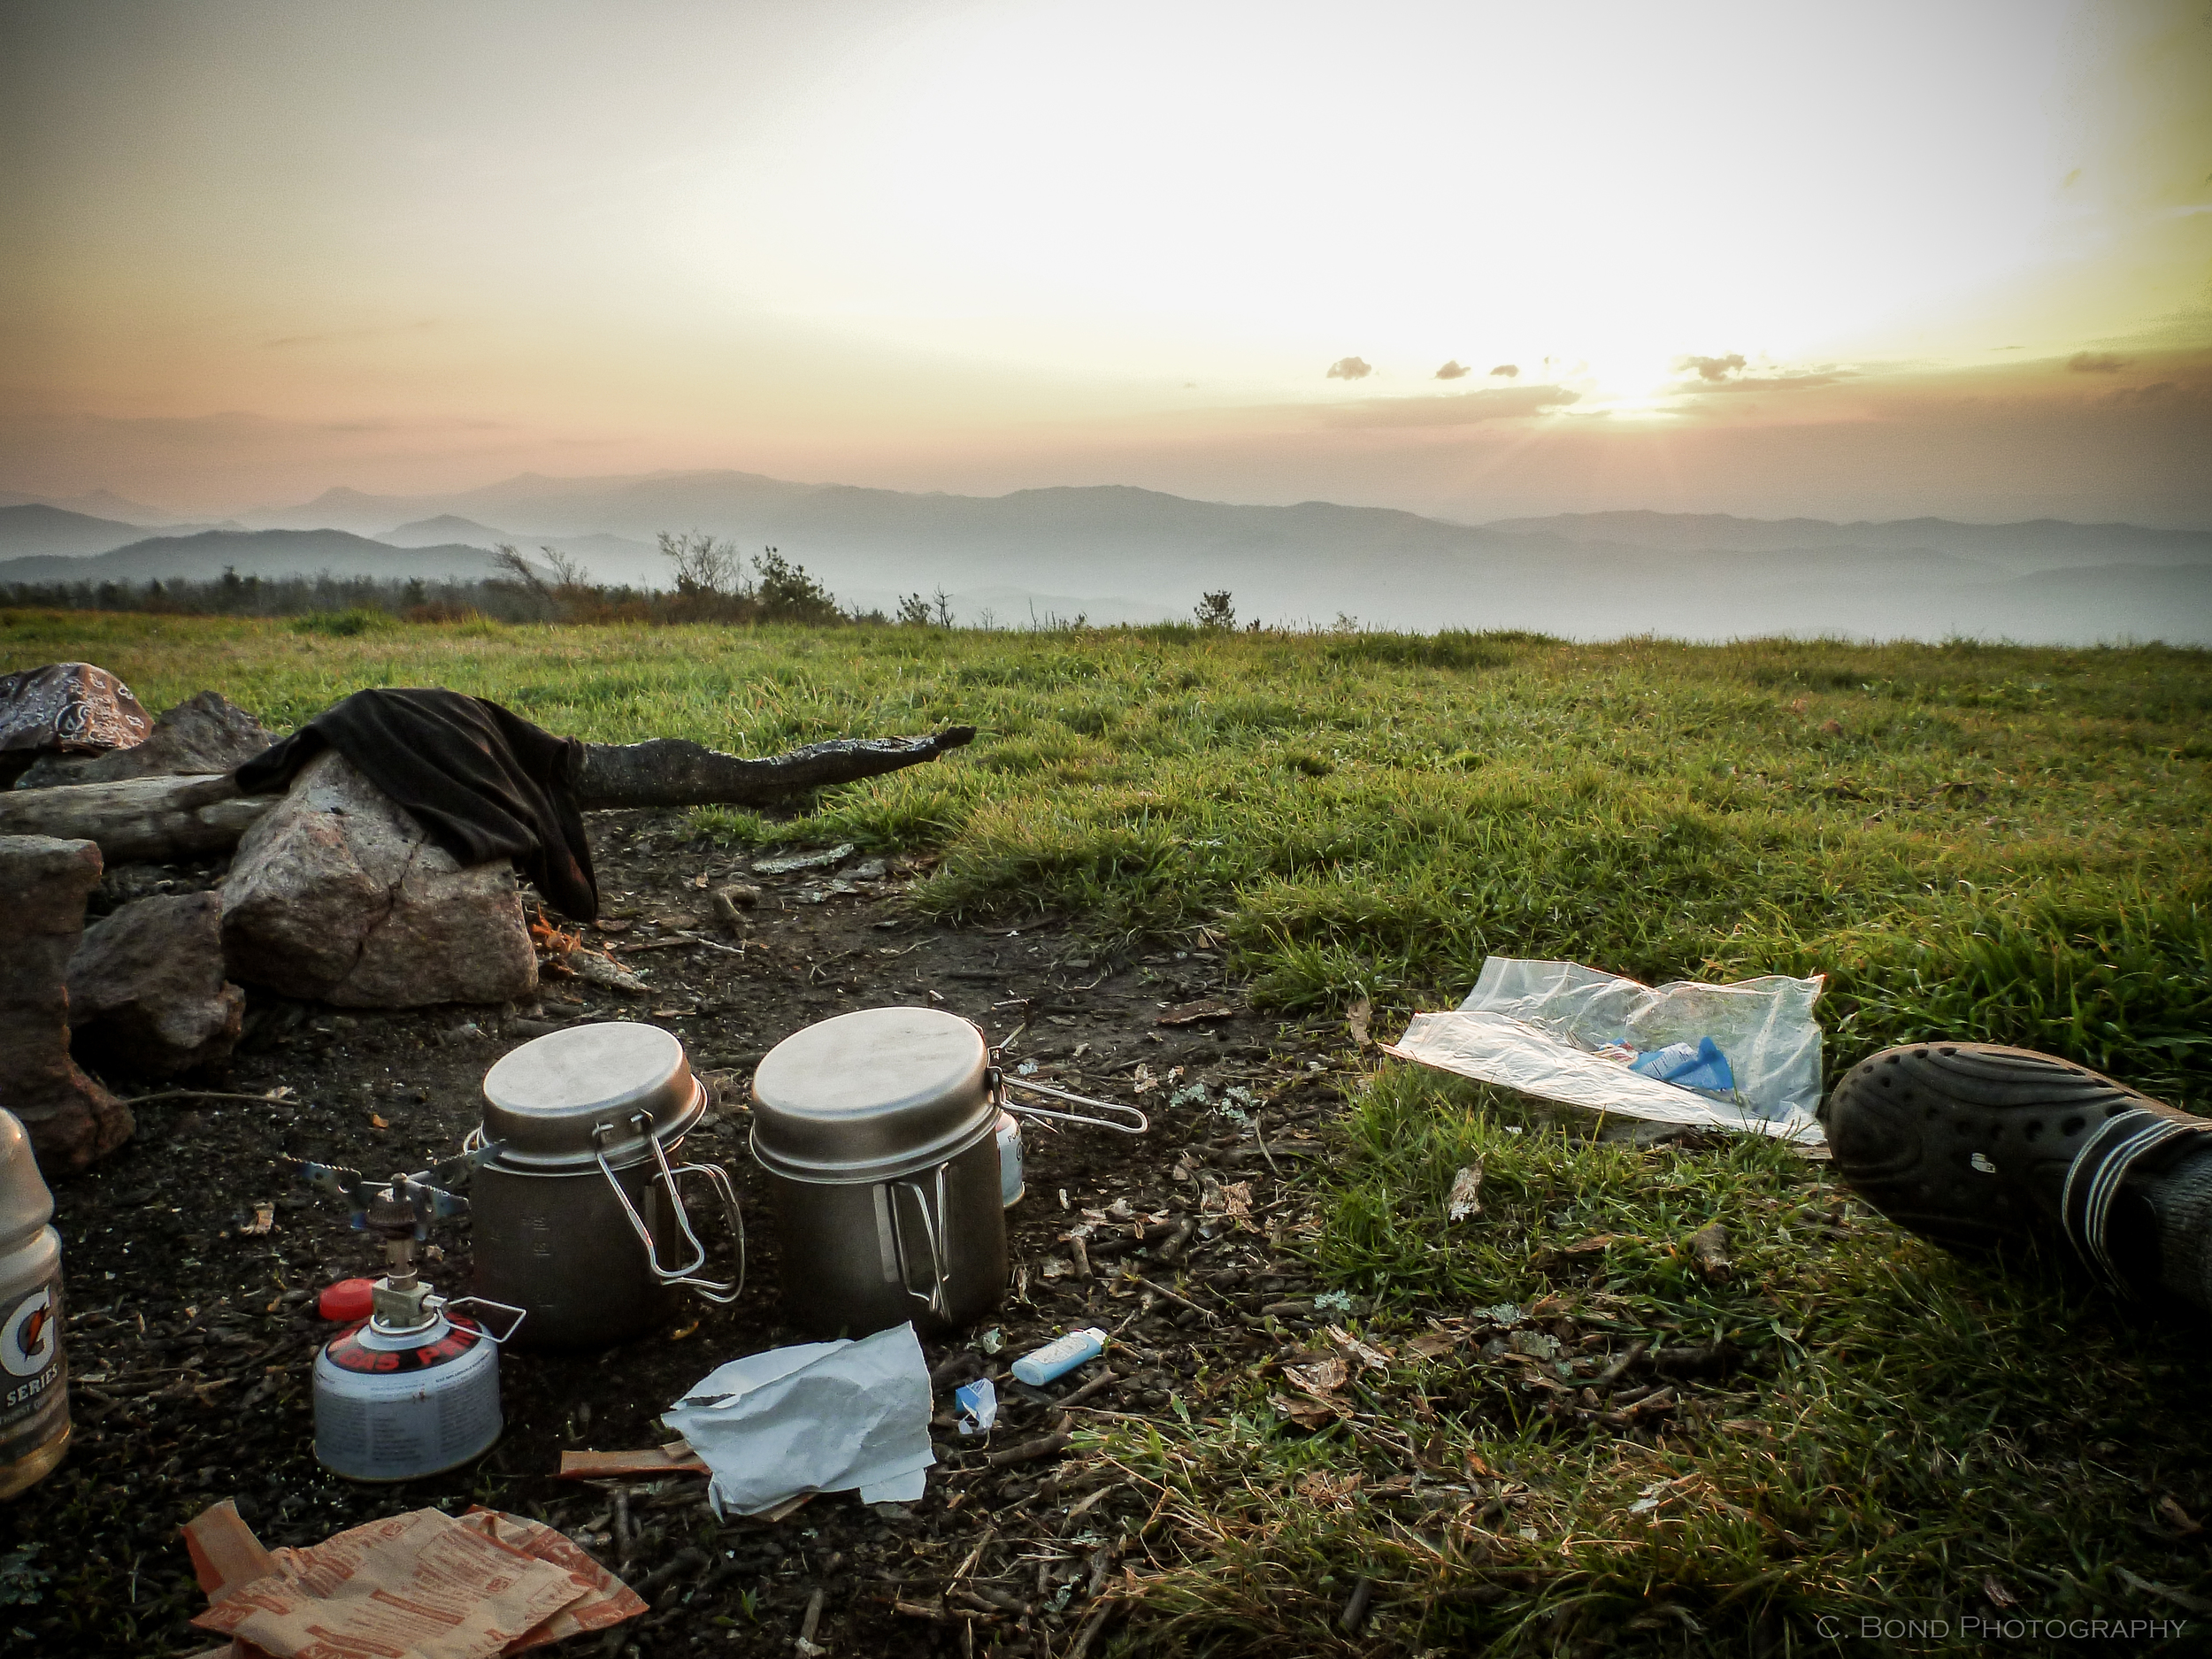 Cookin' diner on top of Beauty Spot